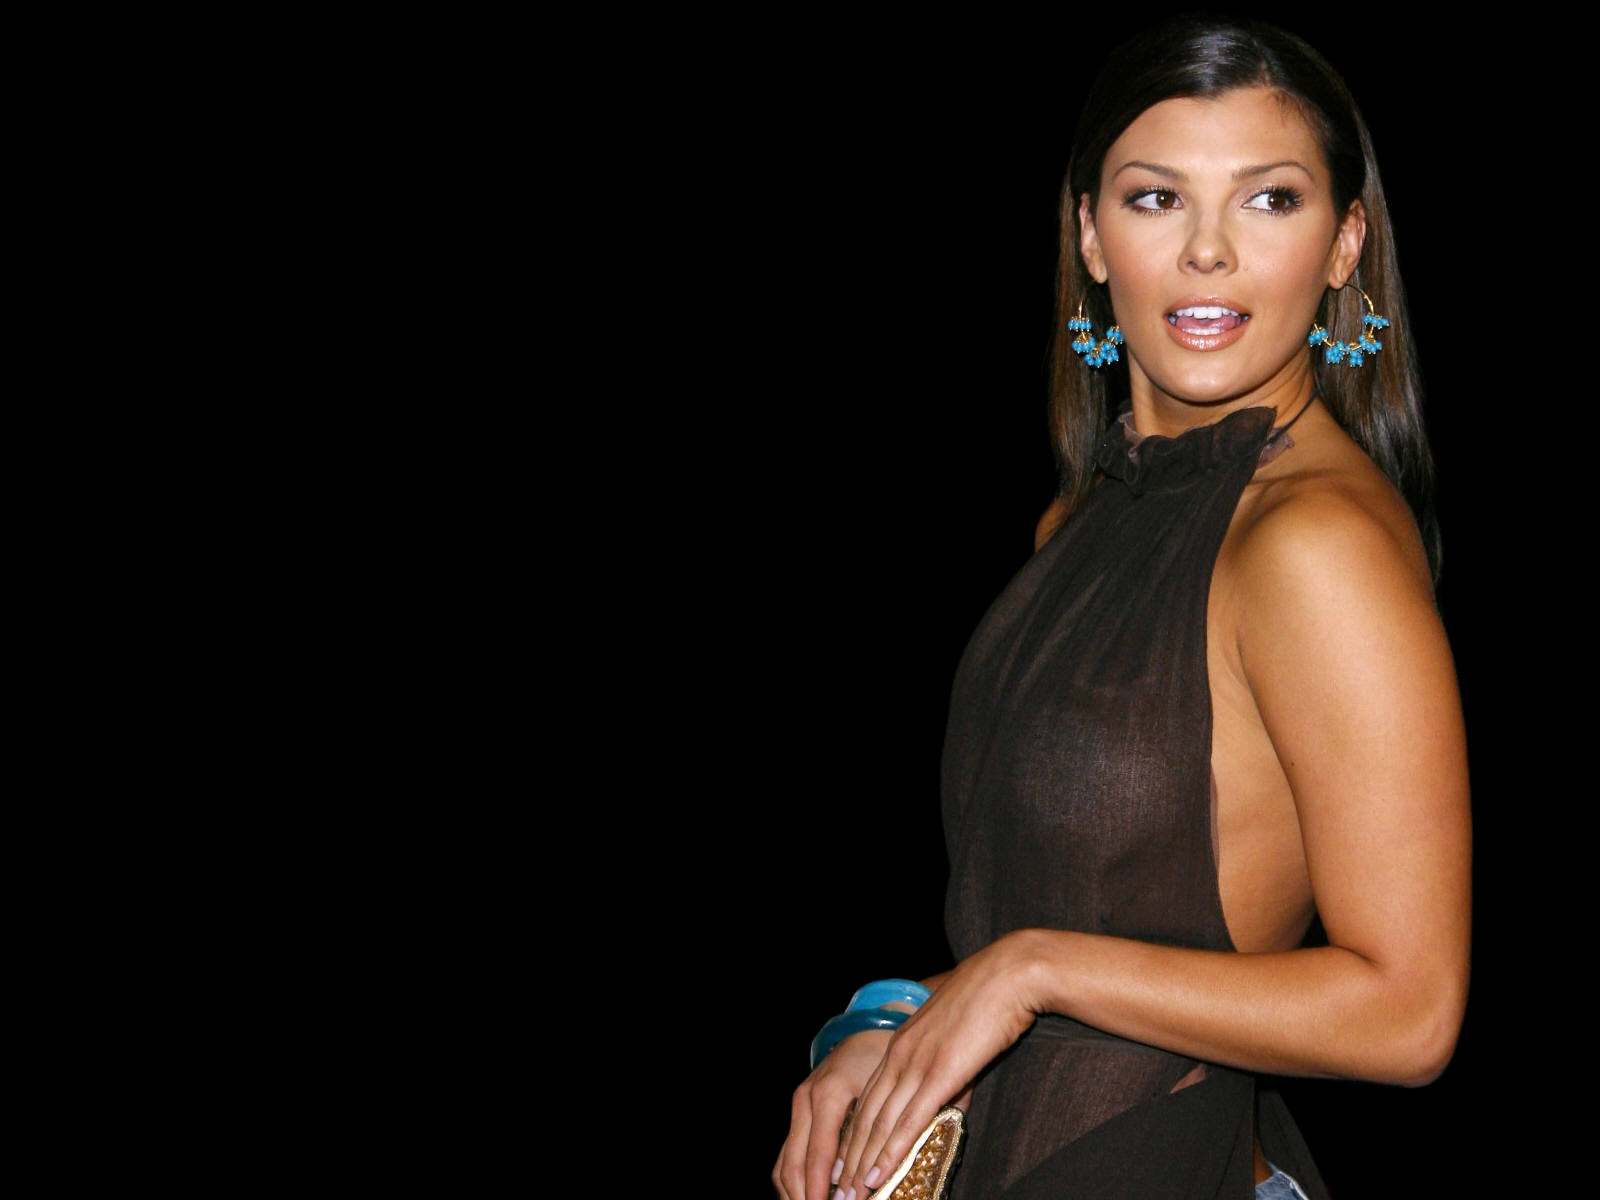 free non watermarked wallpapers of ali landry at fullwalls blogspot